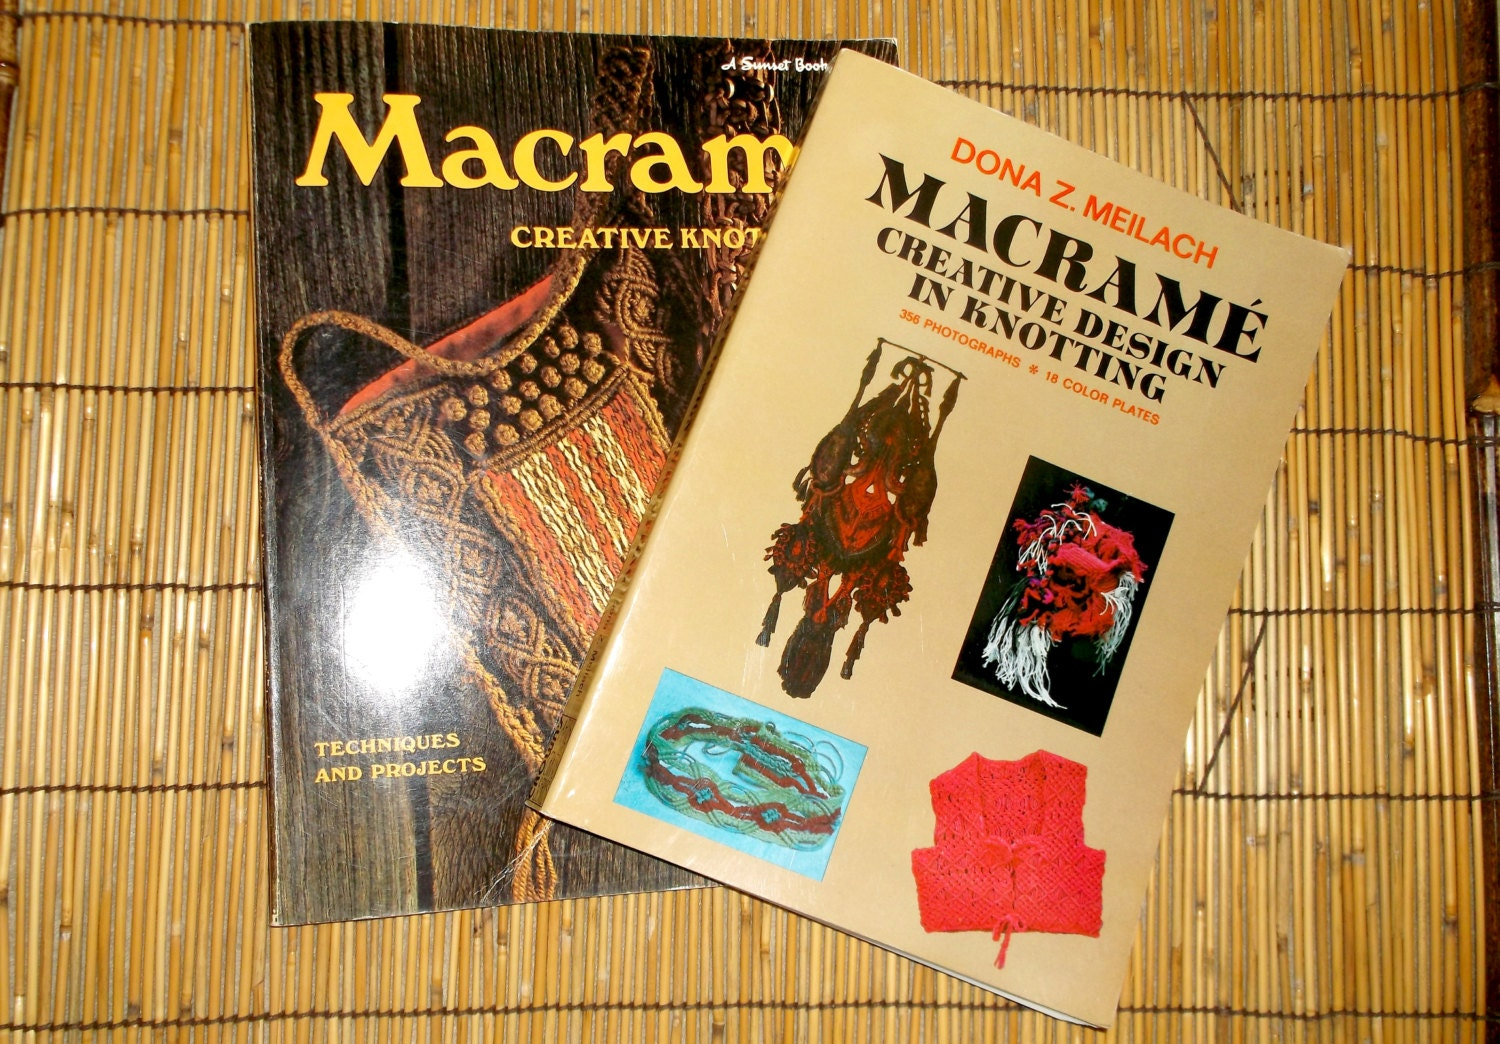 macrame pattern books vintage macrame knot tying pattern books 2 by finders4keepers 1470